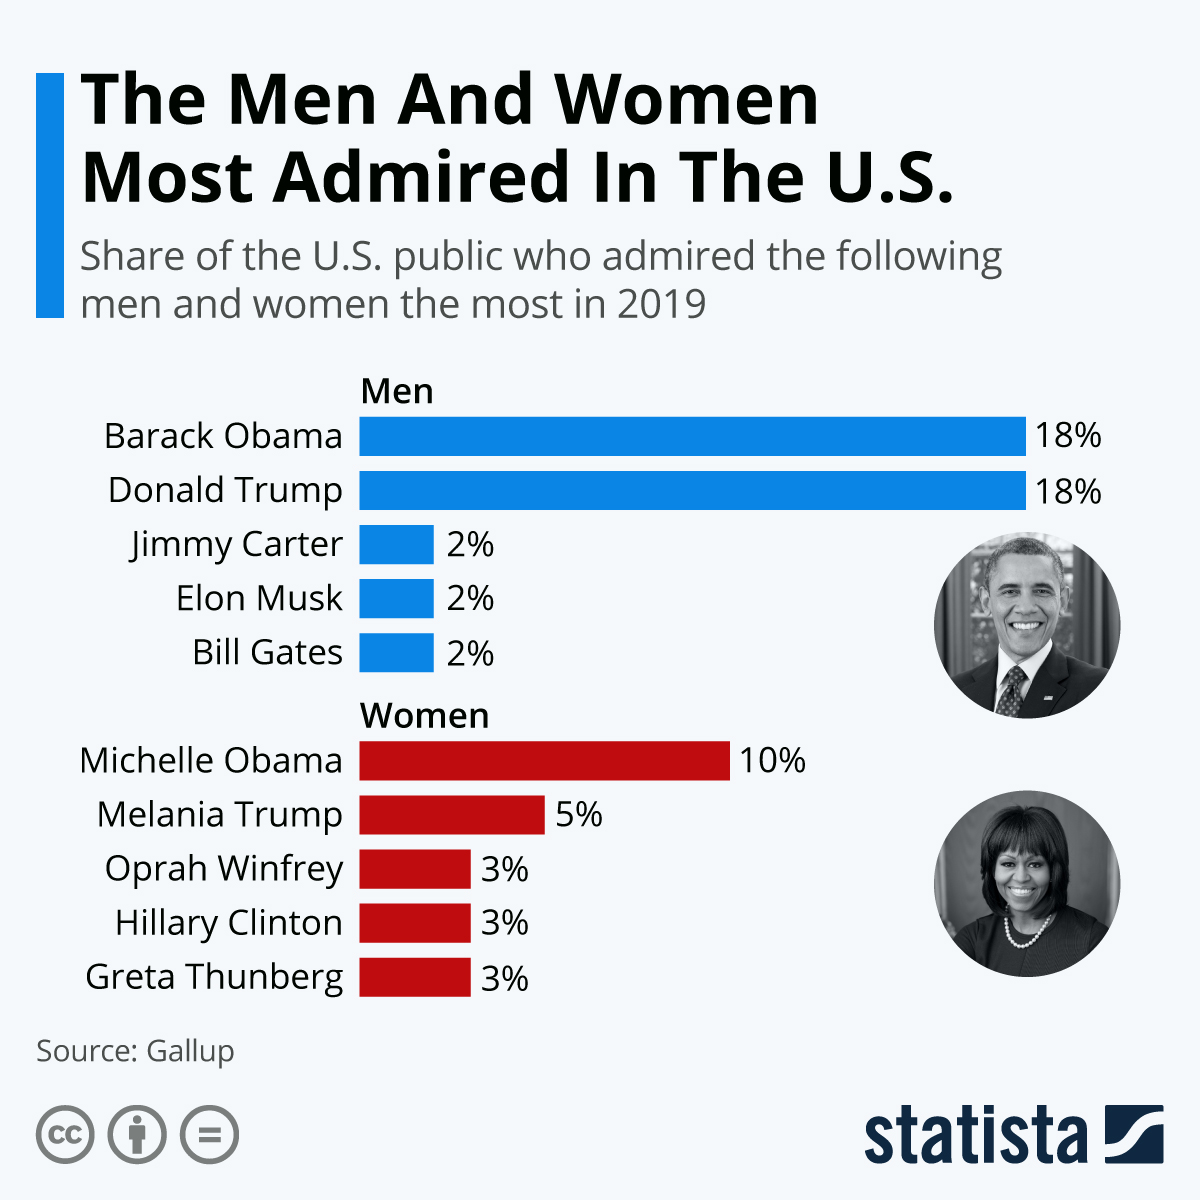 Who Is The Most Admired Personality Of 2019?